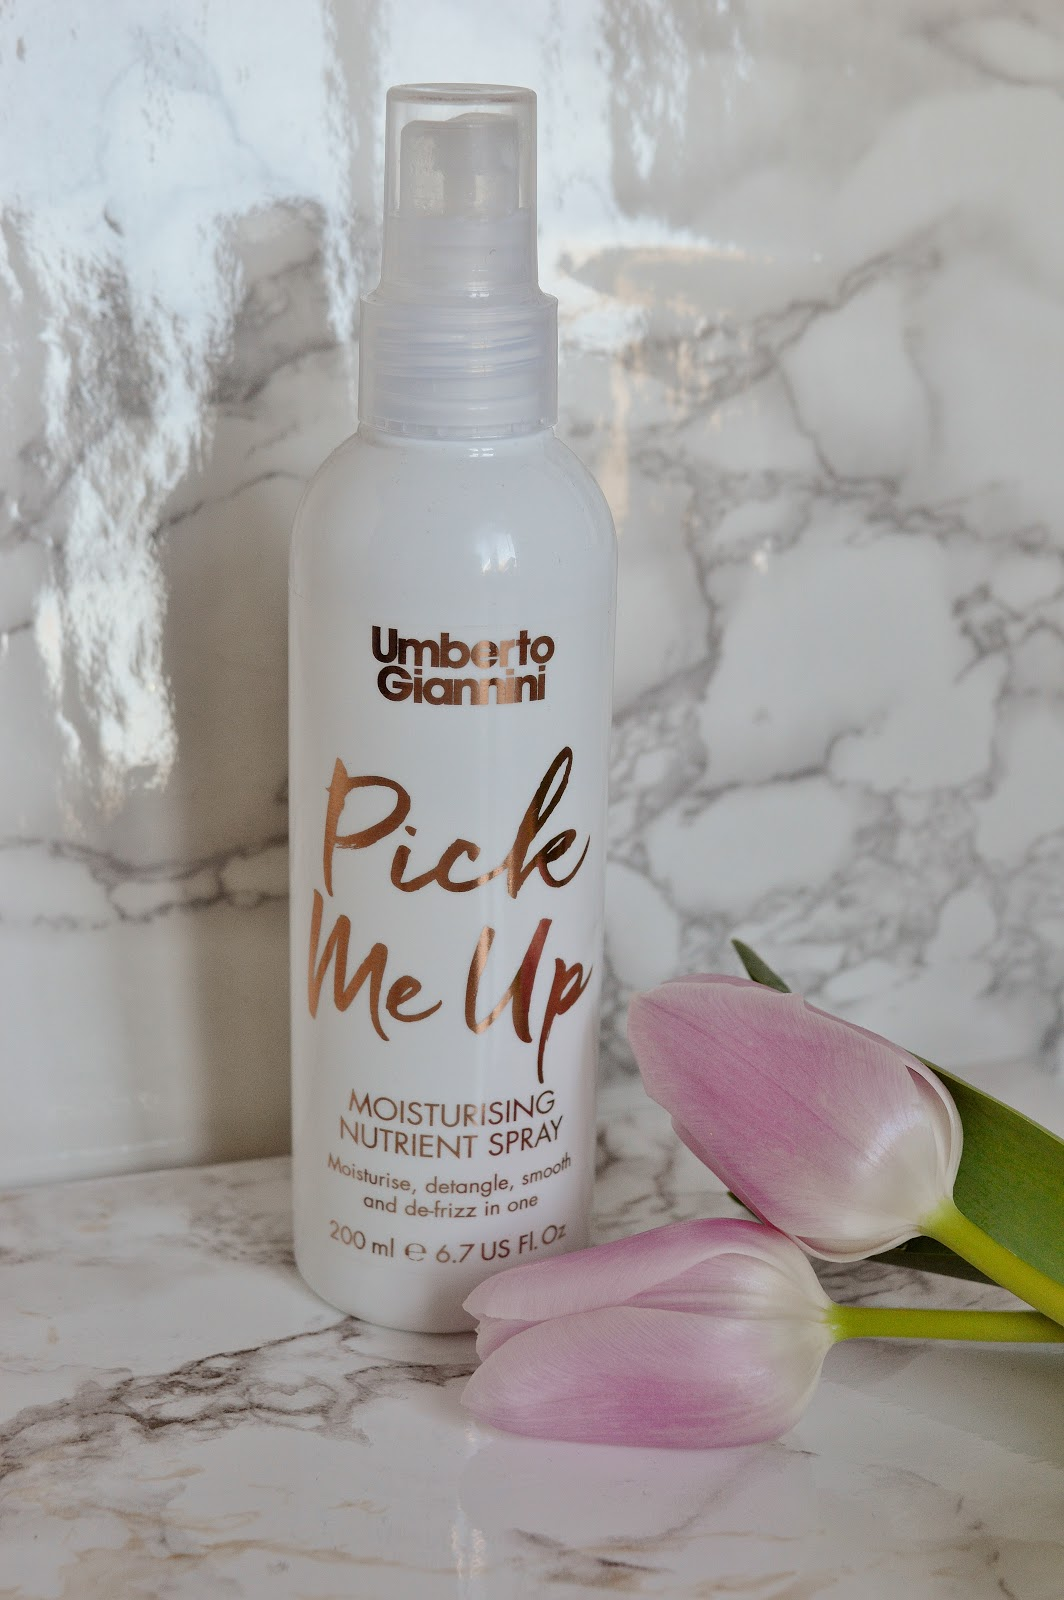 Umberto Giannini Pick Me Up Moisturising Nutrient Spray